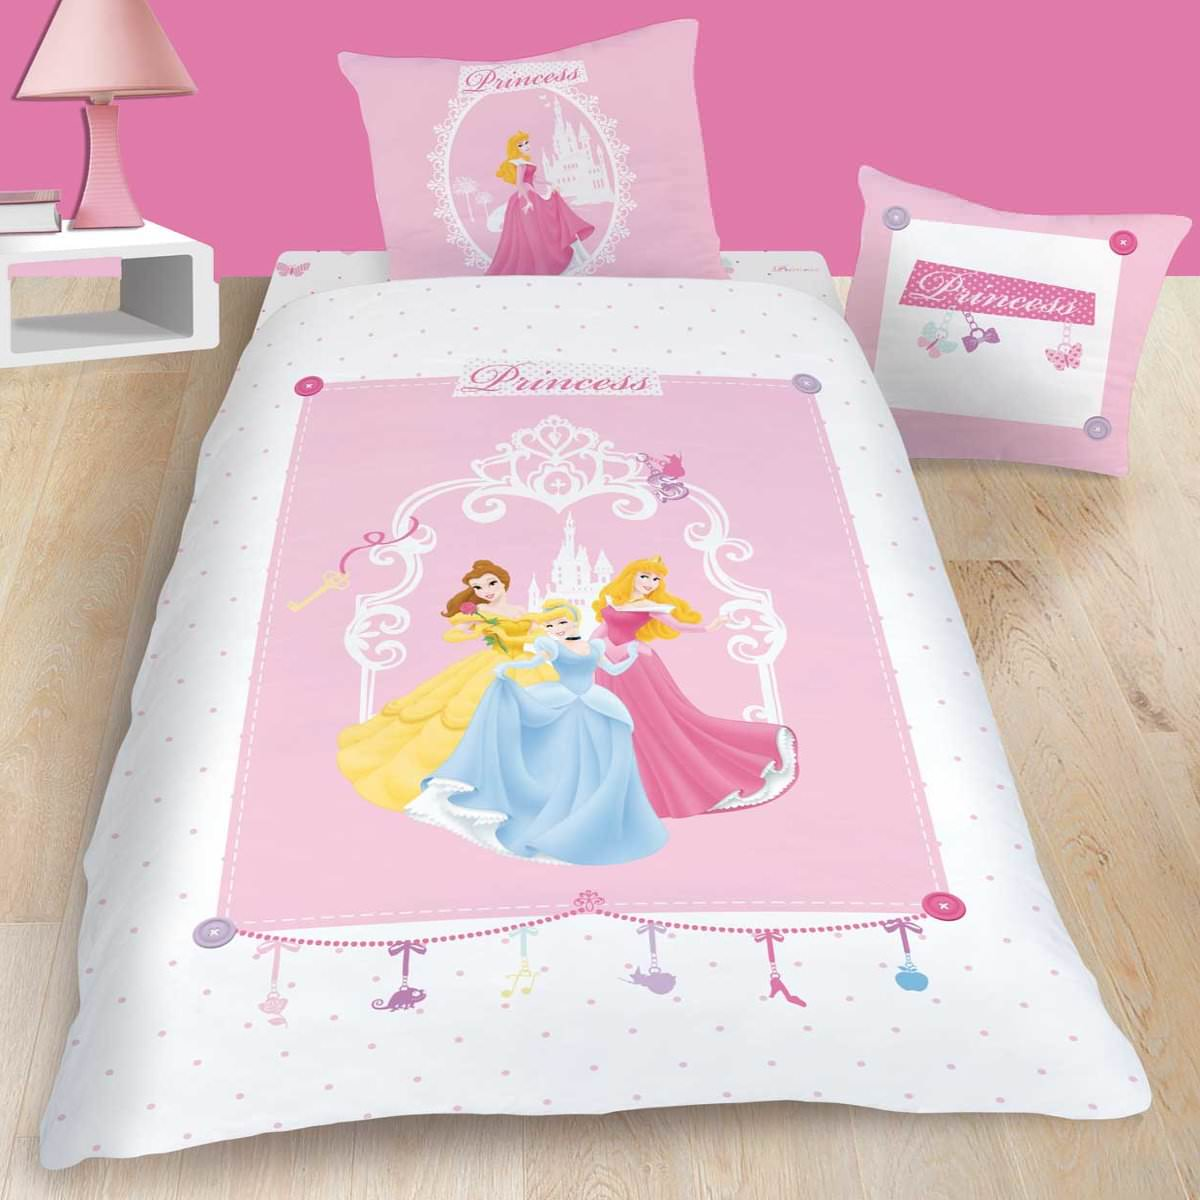 housse de couette disney princesse 140 x 200 cm parure de lit charms d cokids. Black Bedroom Furniture Sets. Home Design Ideas